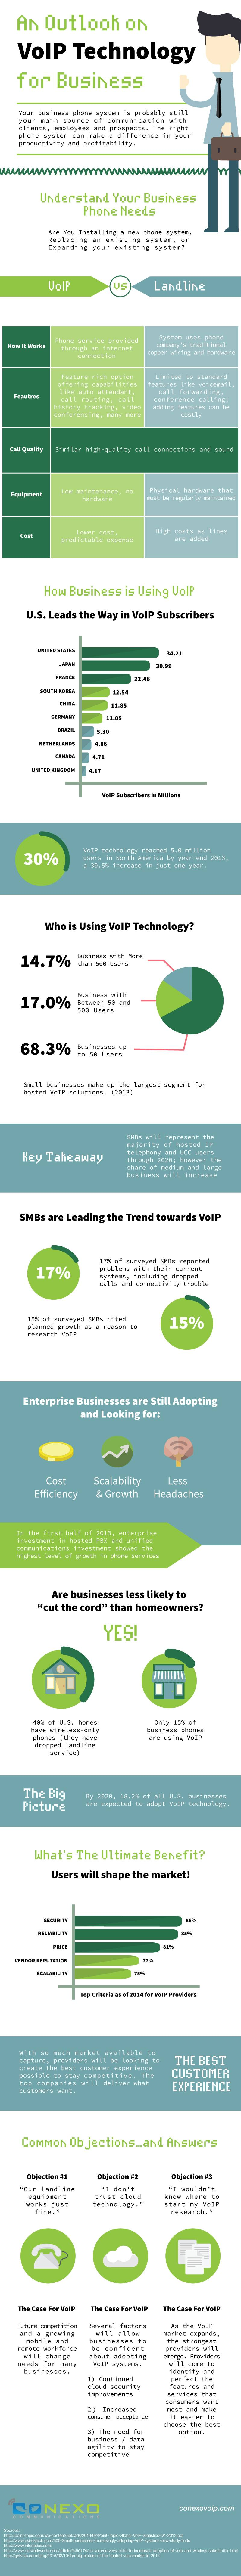 An Outlook on VoIP Technology for Business (Infographic)